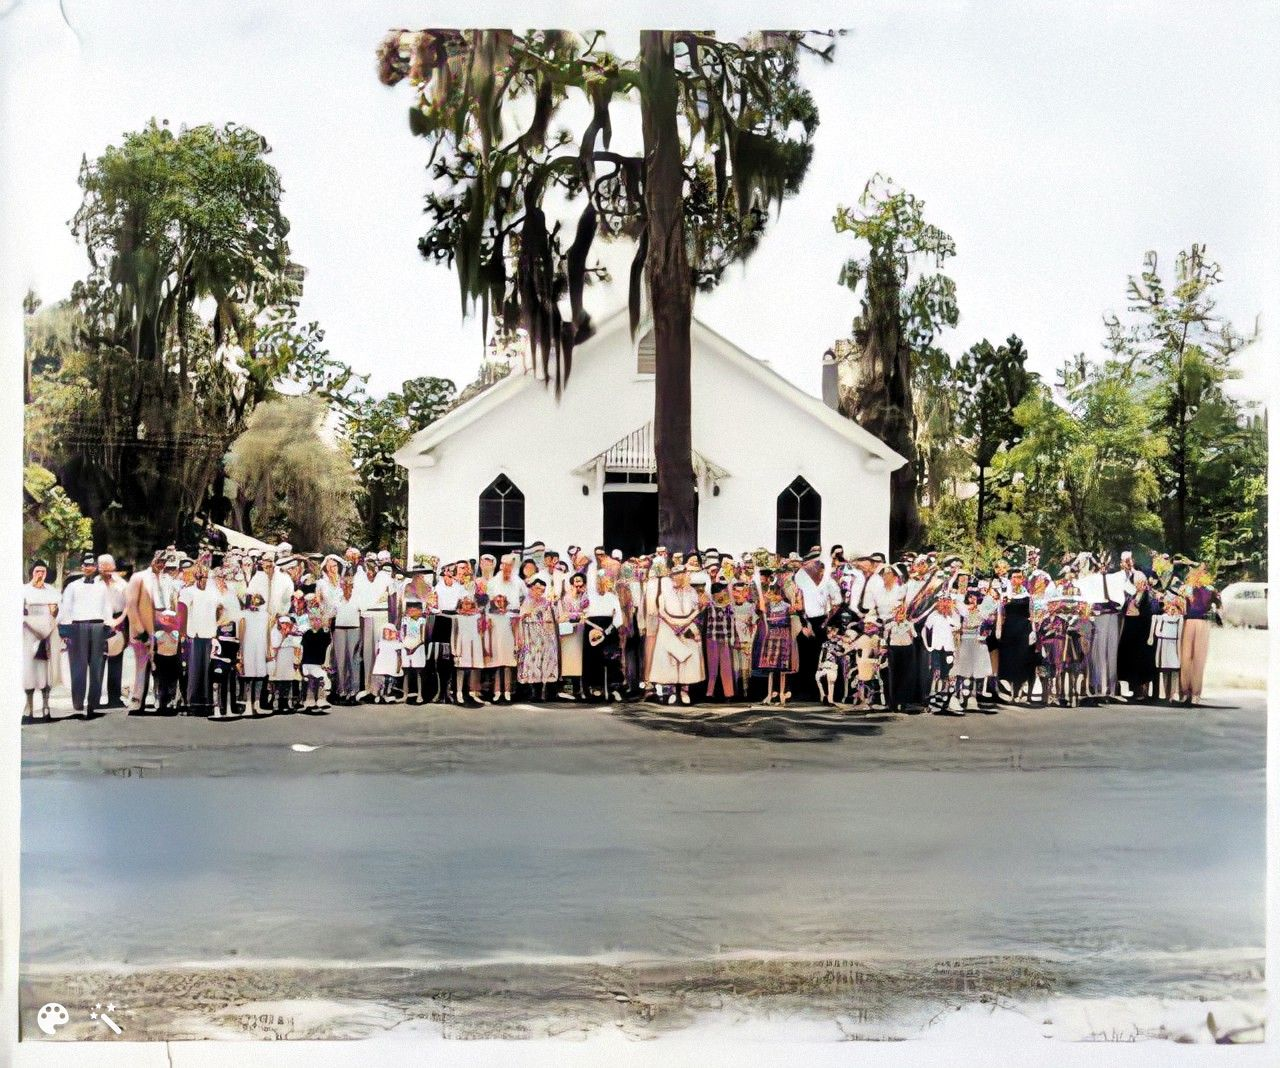 Dowling Family Reunion in 1953